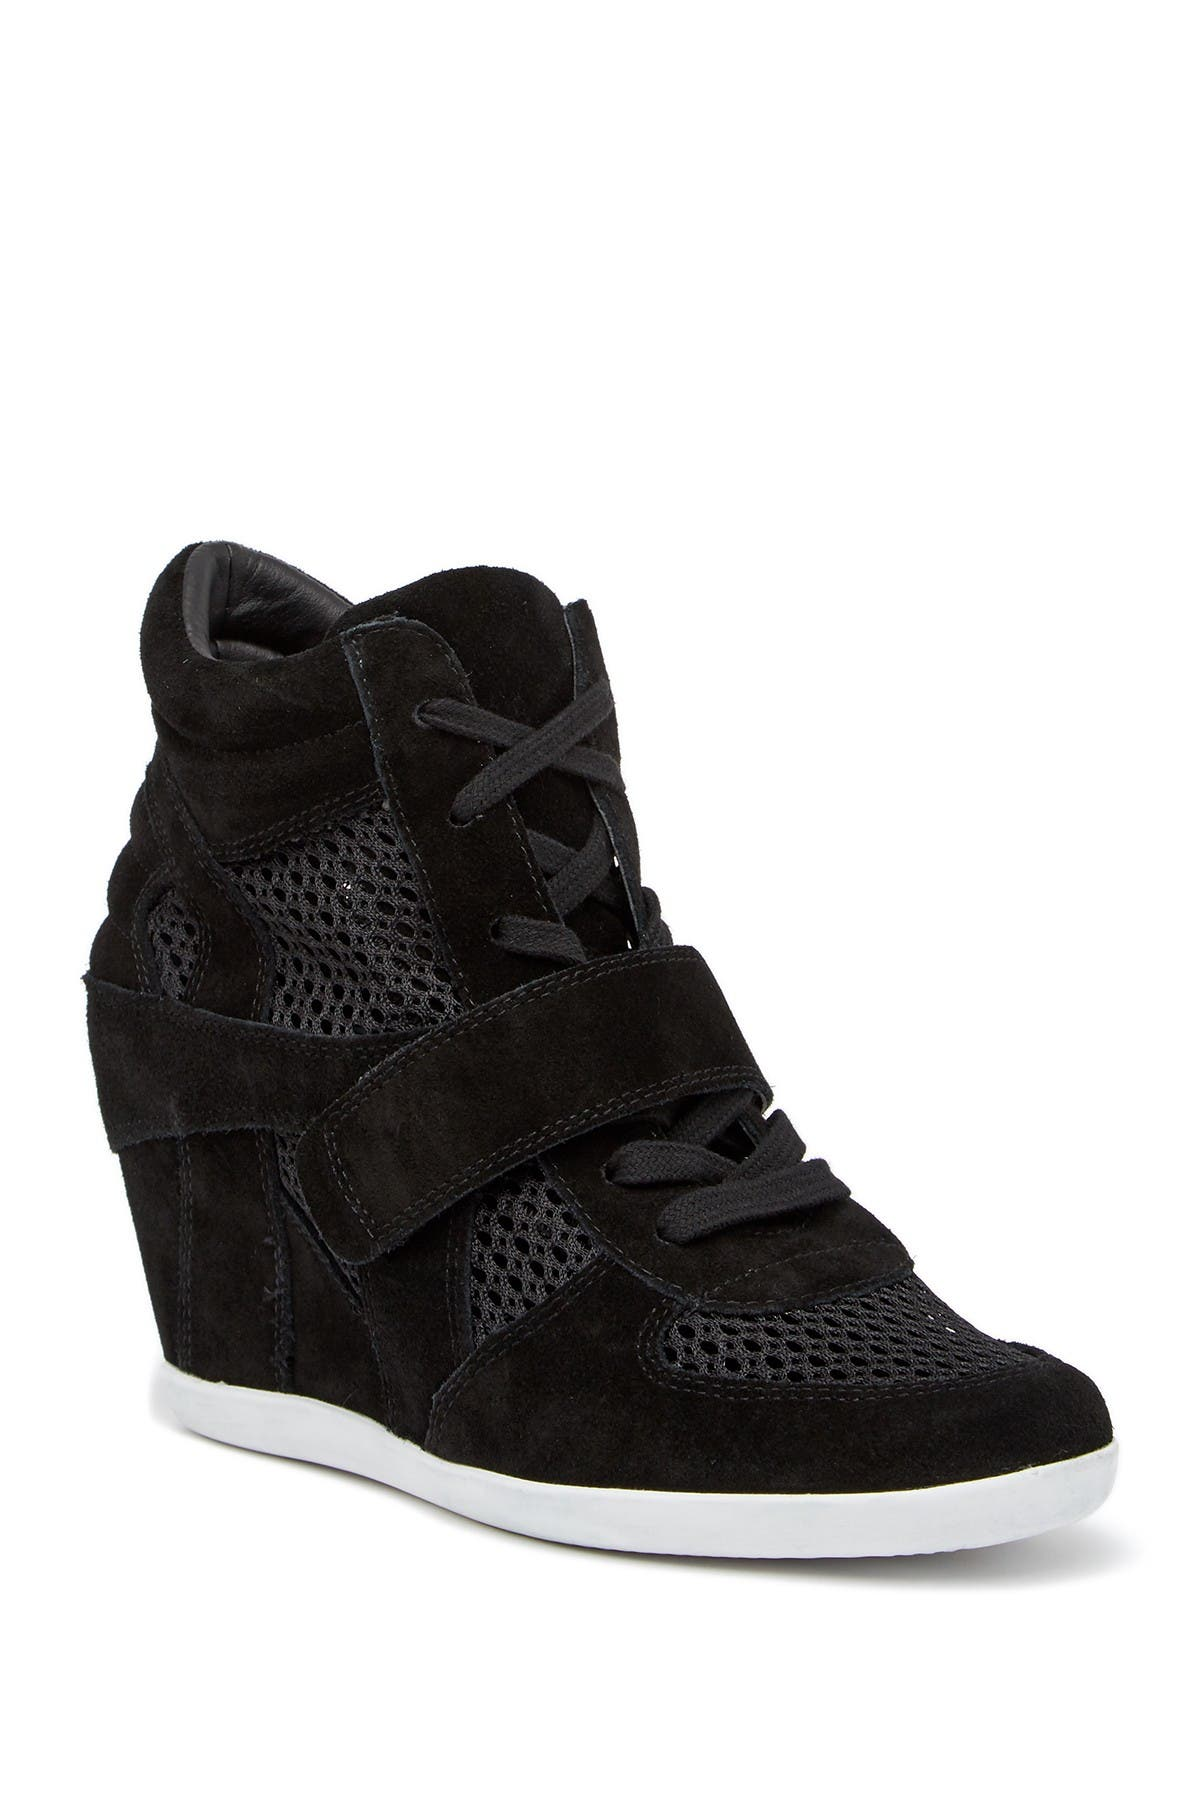 Image of Ash Bowie Suede Perforated Wedge Sneaker